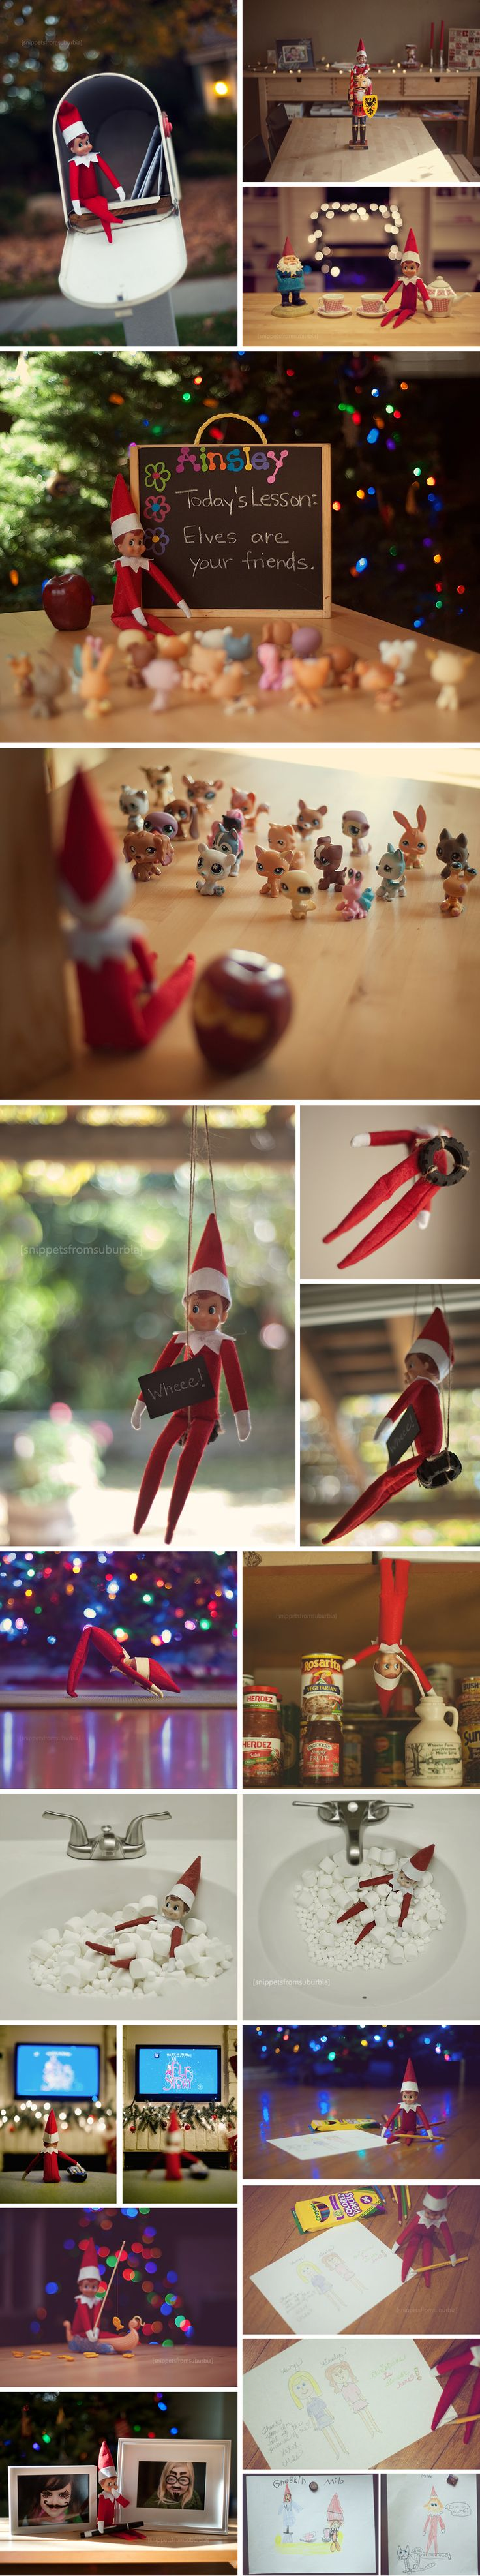 Christmas Elf on the Shelf - ideas